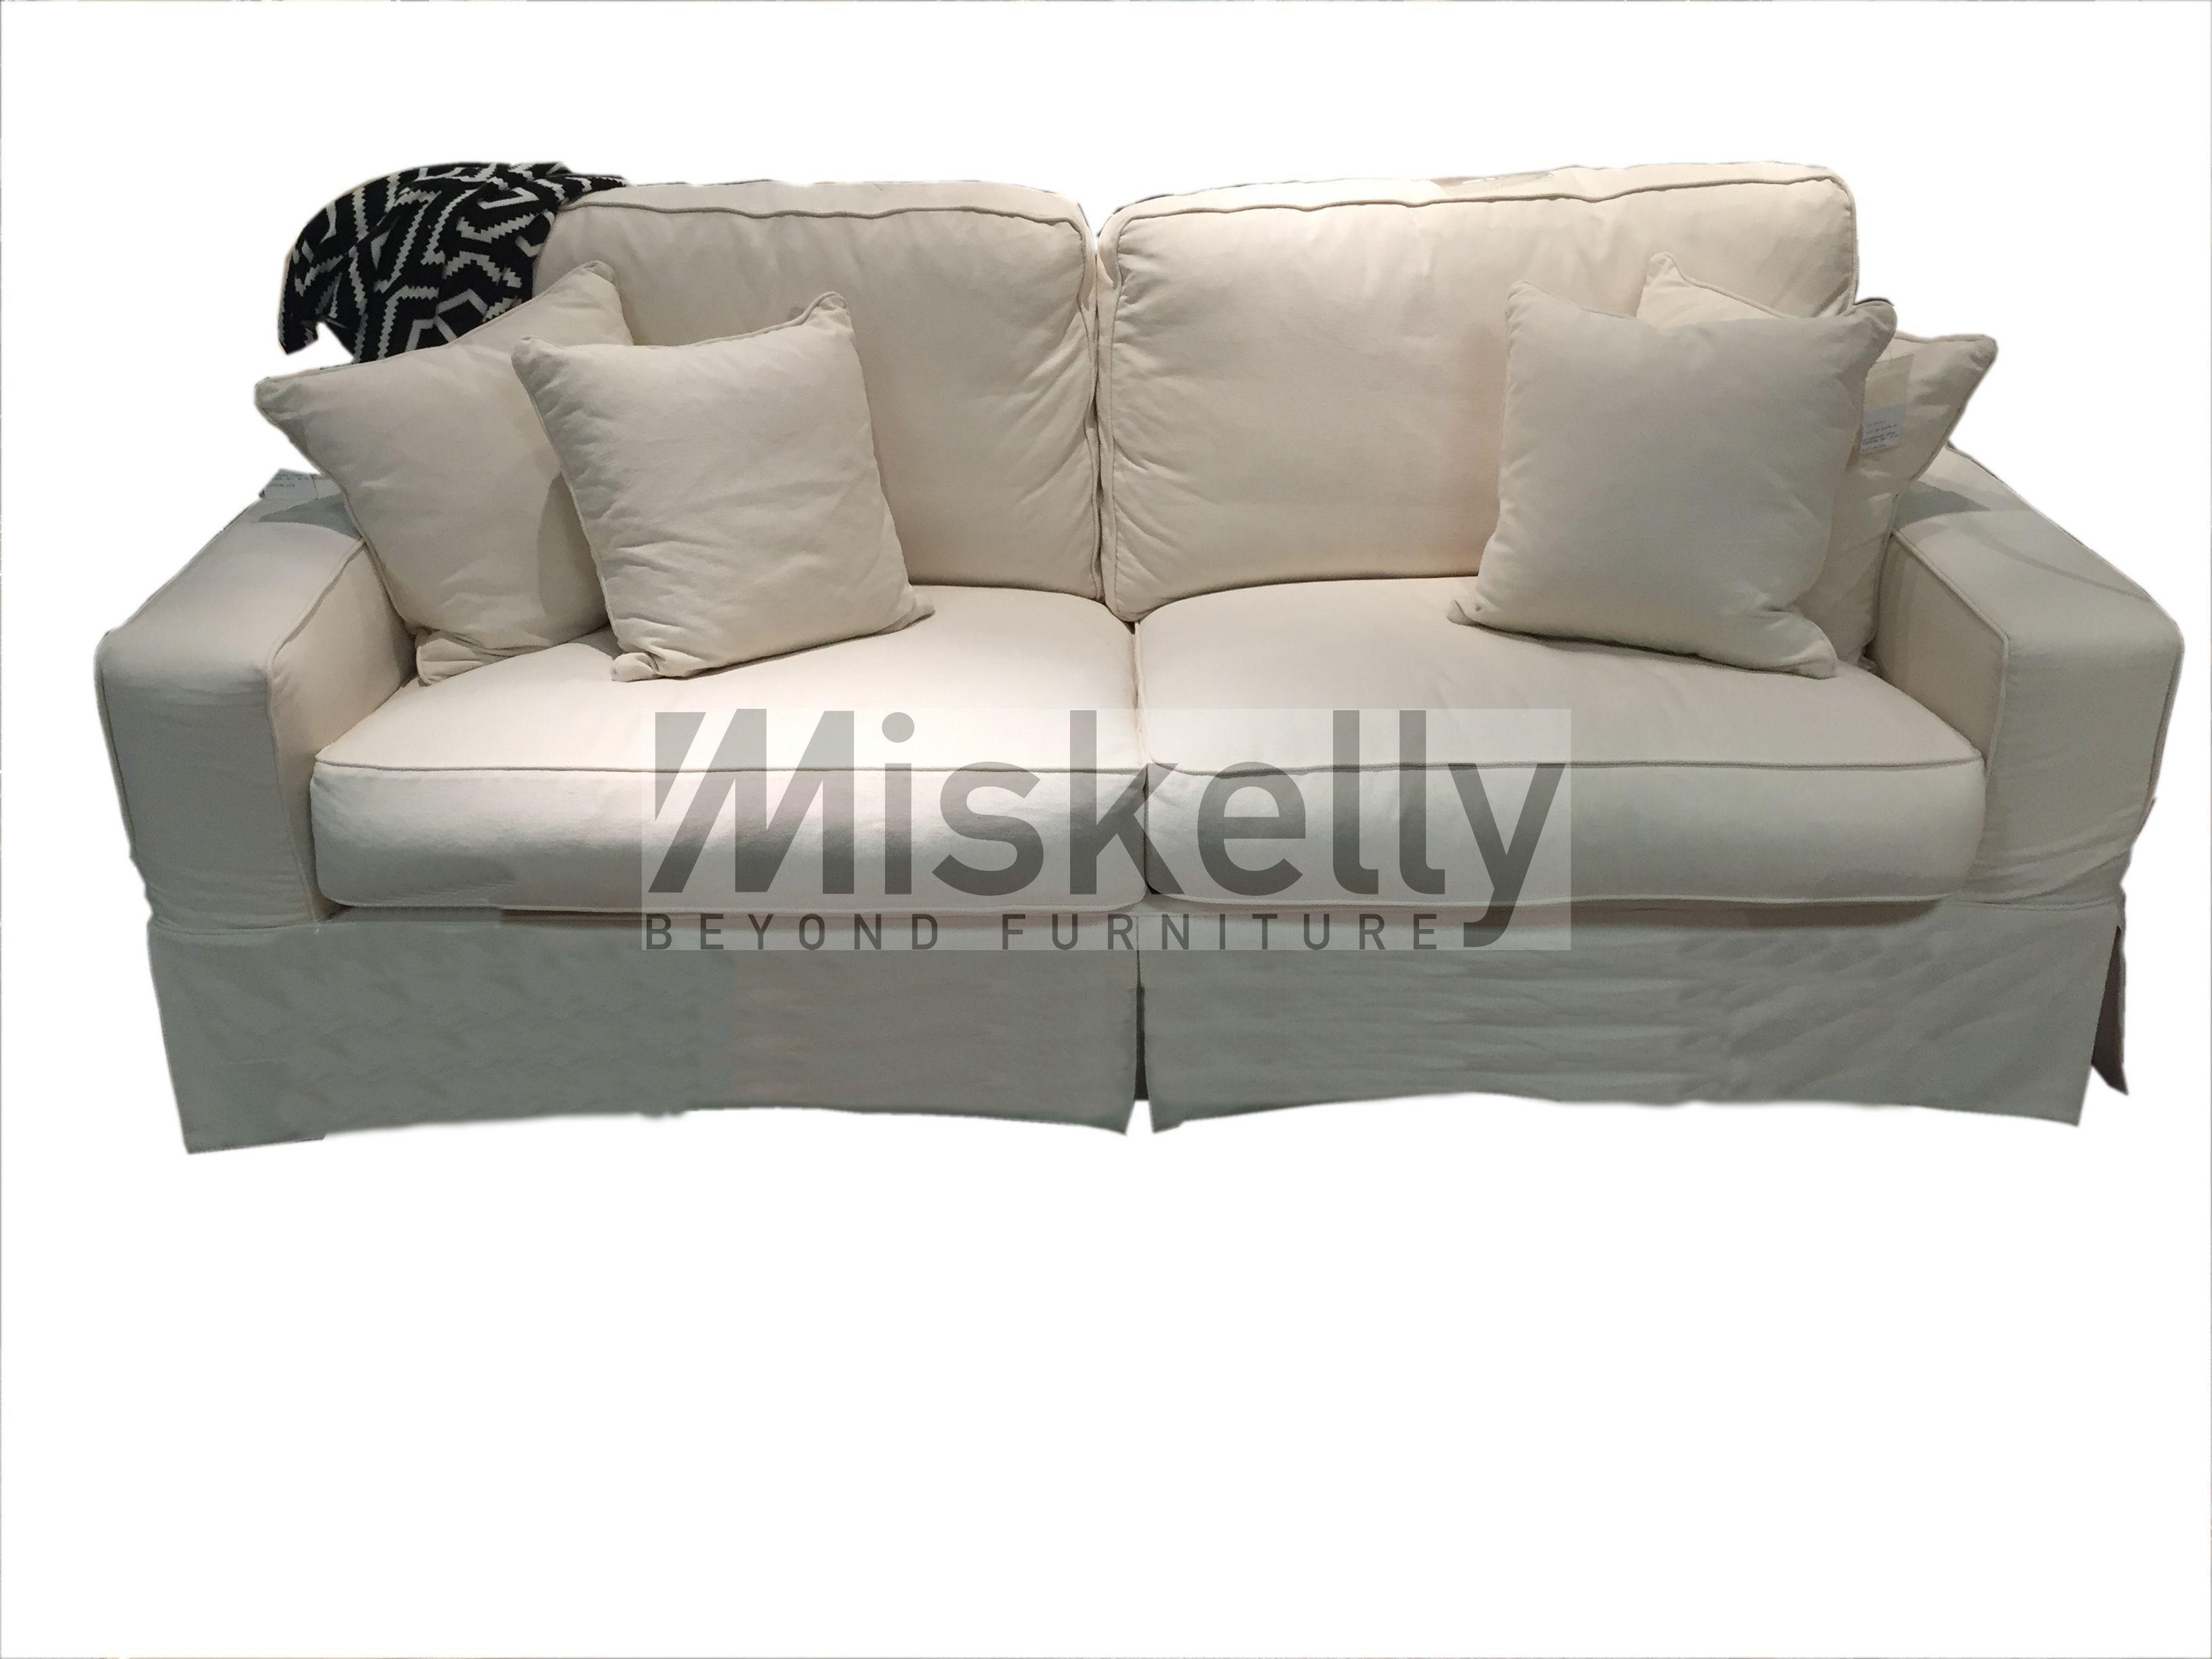 Synergy Home Furnishings Montague Cream Slipcover Sofa   Item Number:  1085 00